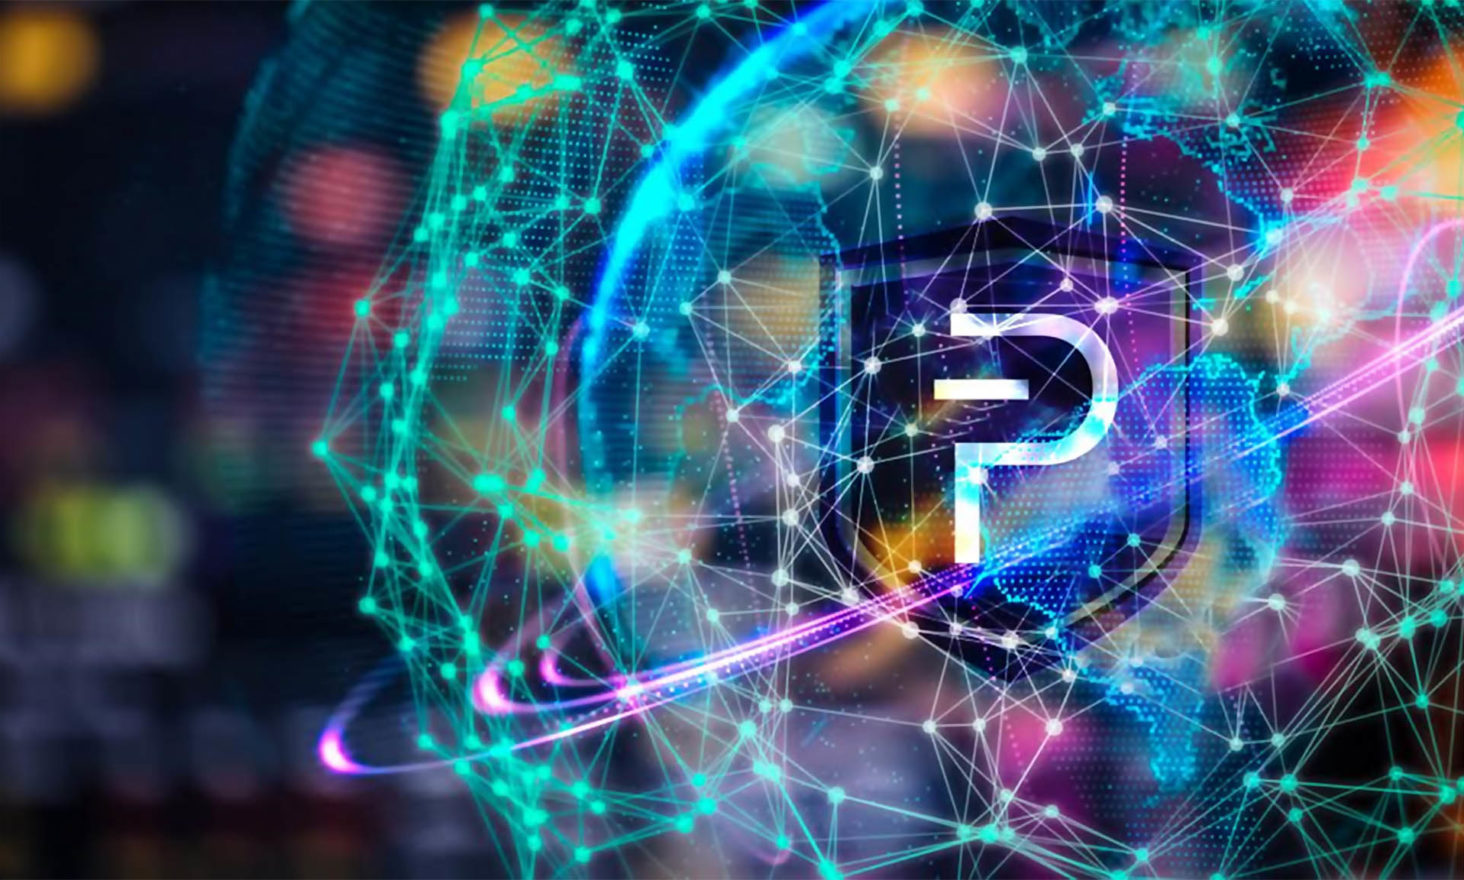 PIVX Seeks To Improve Privacy With Zerocoin Protocol Integration